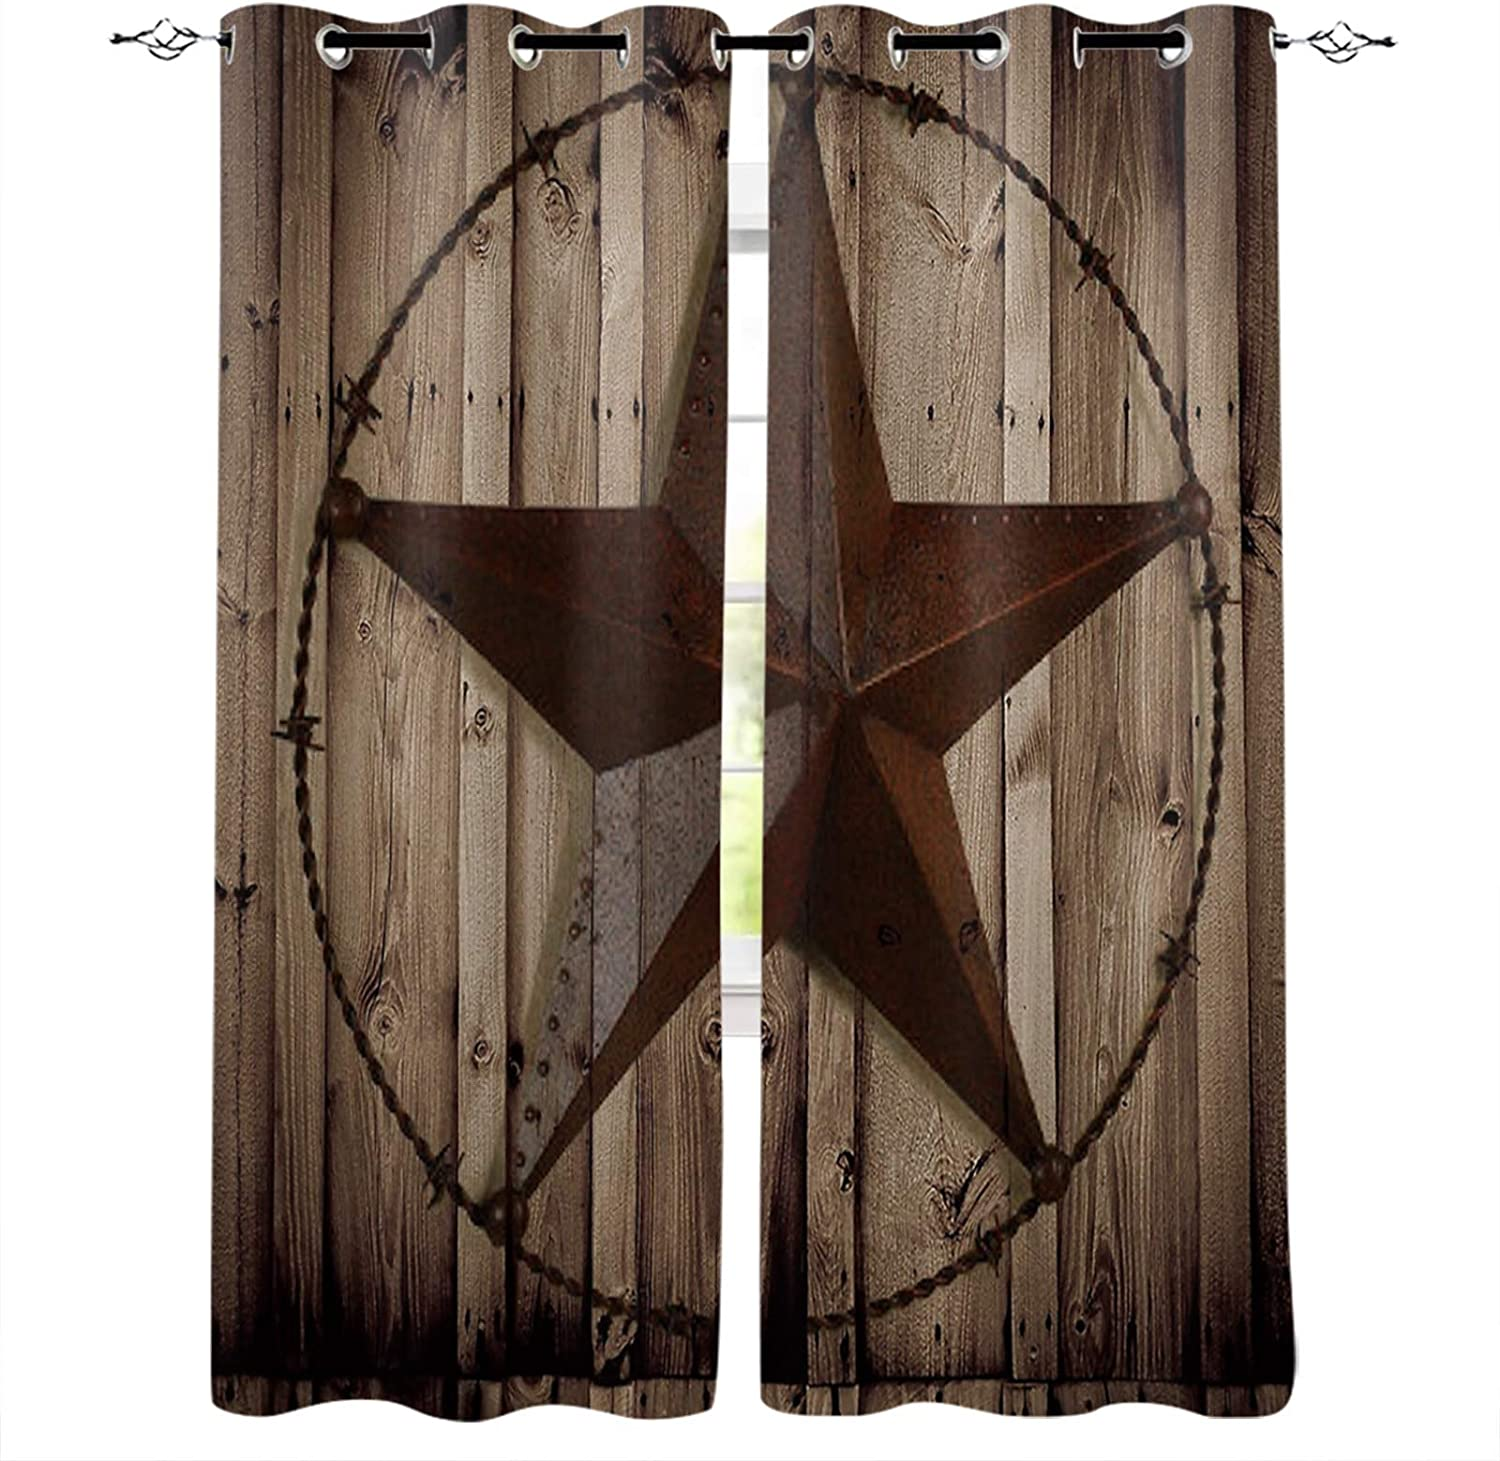 Texas Star Rust Window Curtains with Grommets Kitchen Drapes, Retro Wooden Stripes Grain 2 Panels Window Treatment Drapes for Living Room/Bathroom/Office 80